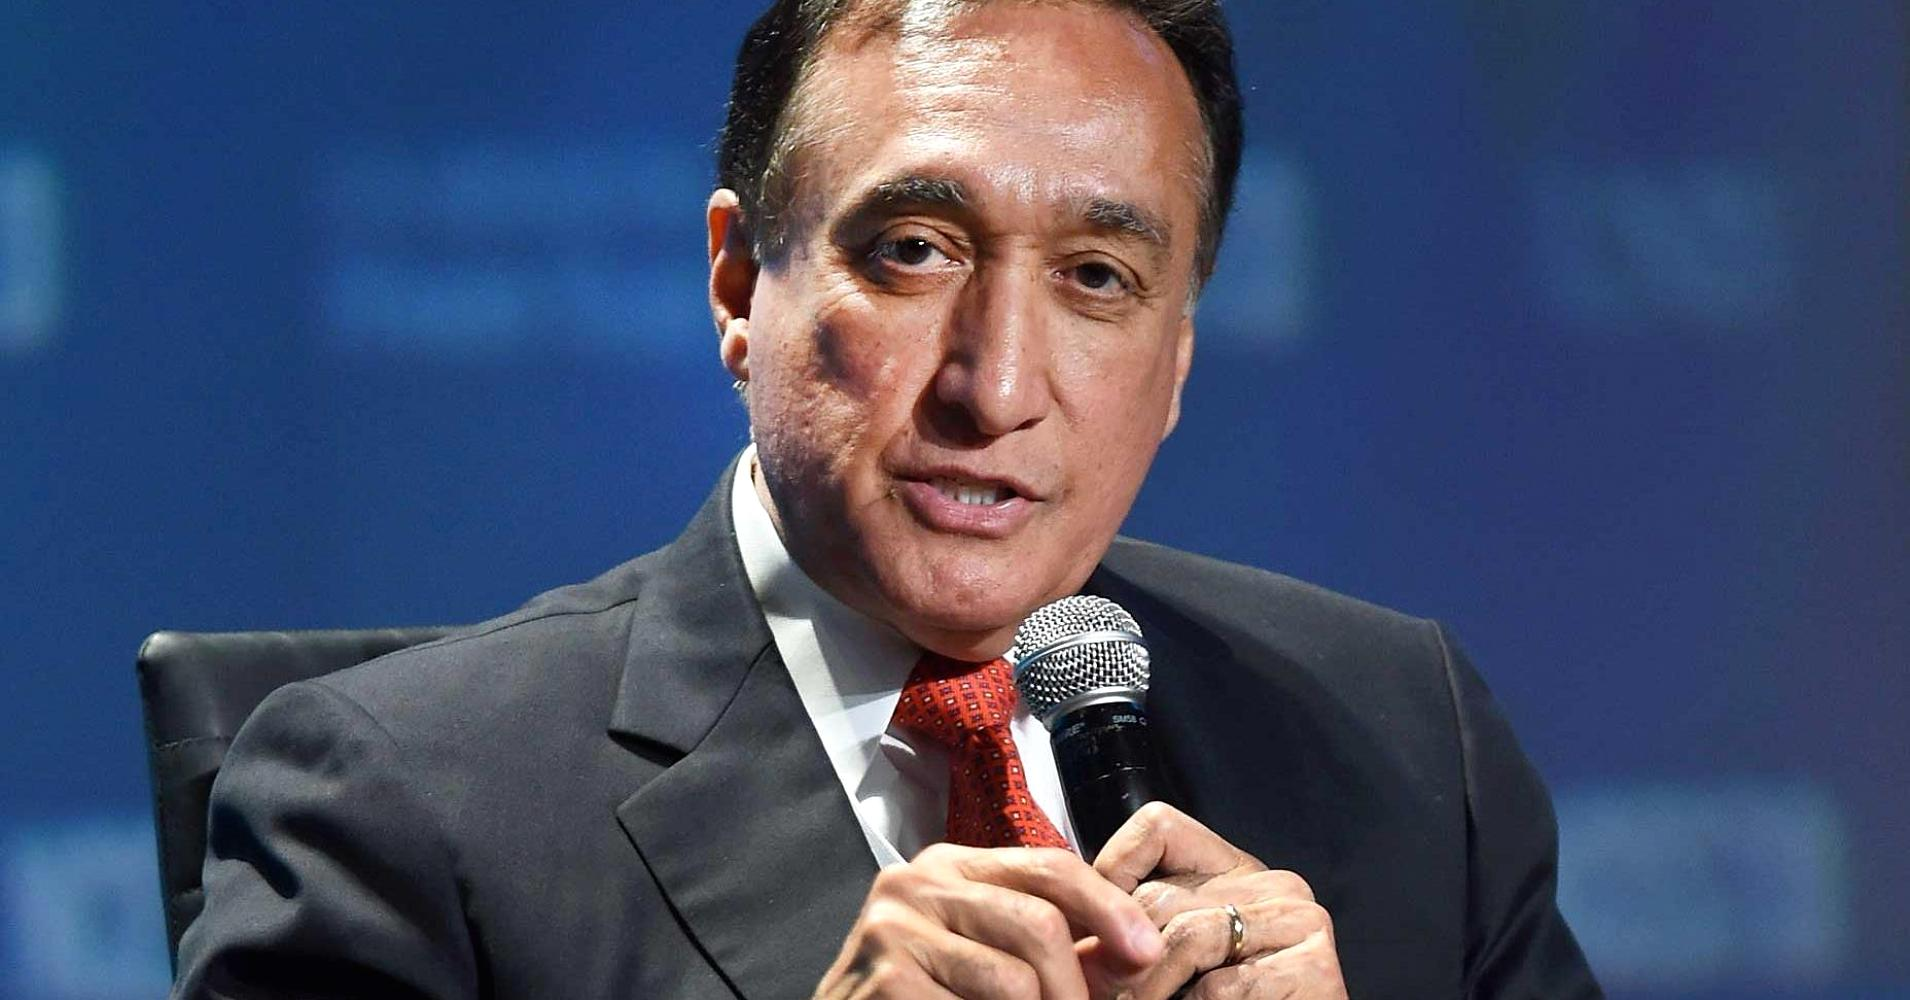 Former HUD Secretary Henry Cisneros says new tax code threatens the 'fragility' of the US system